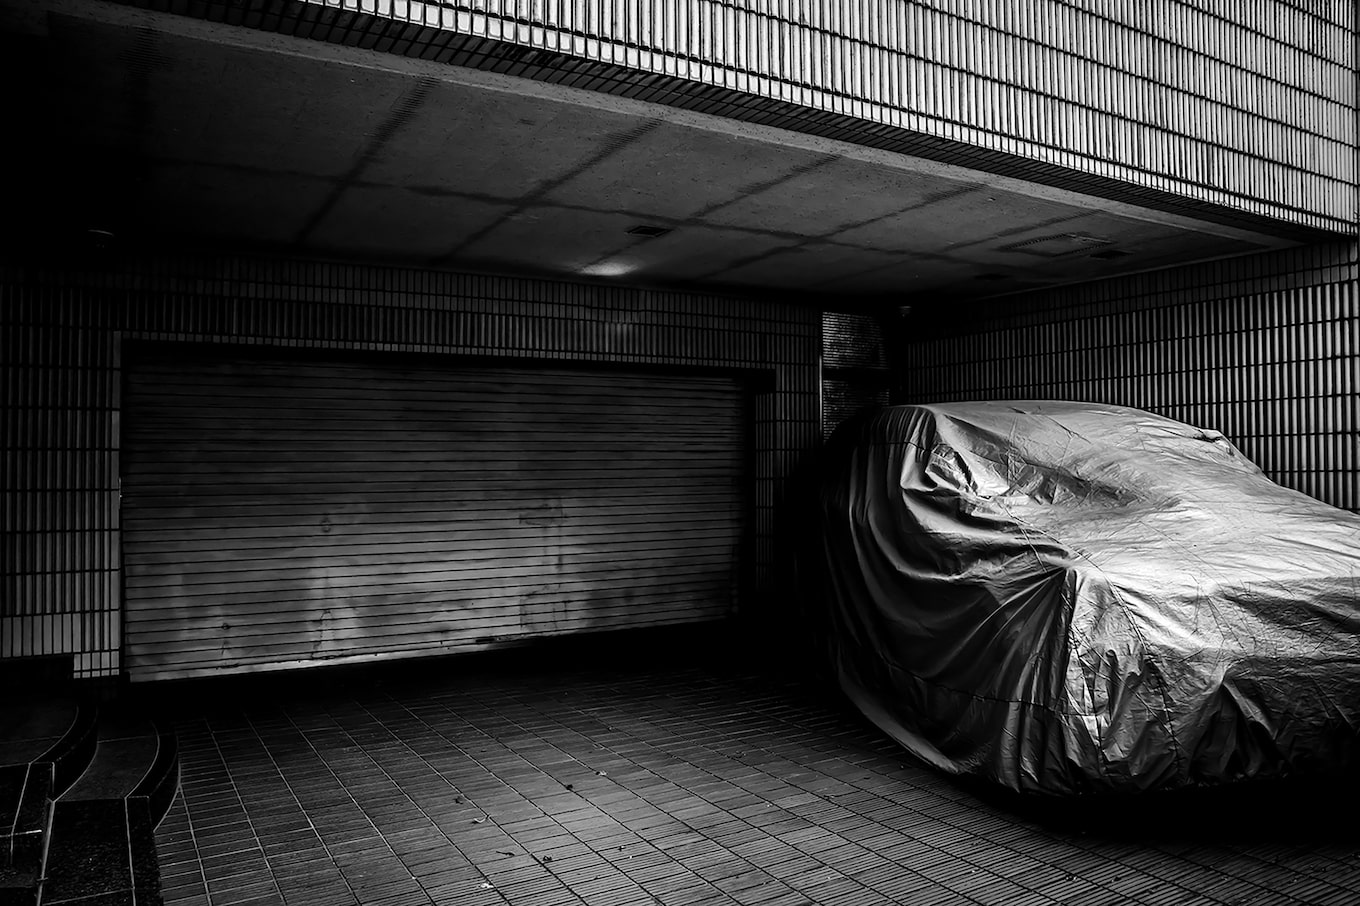 Gábor-Erdelyi-sony-covered-car-outside-garage